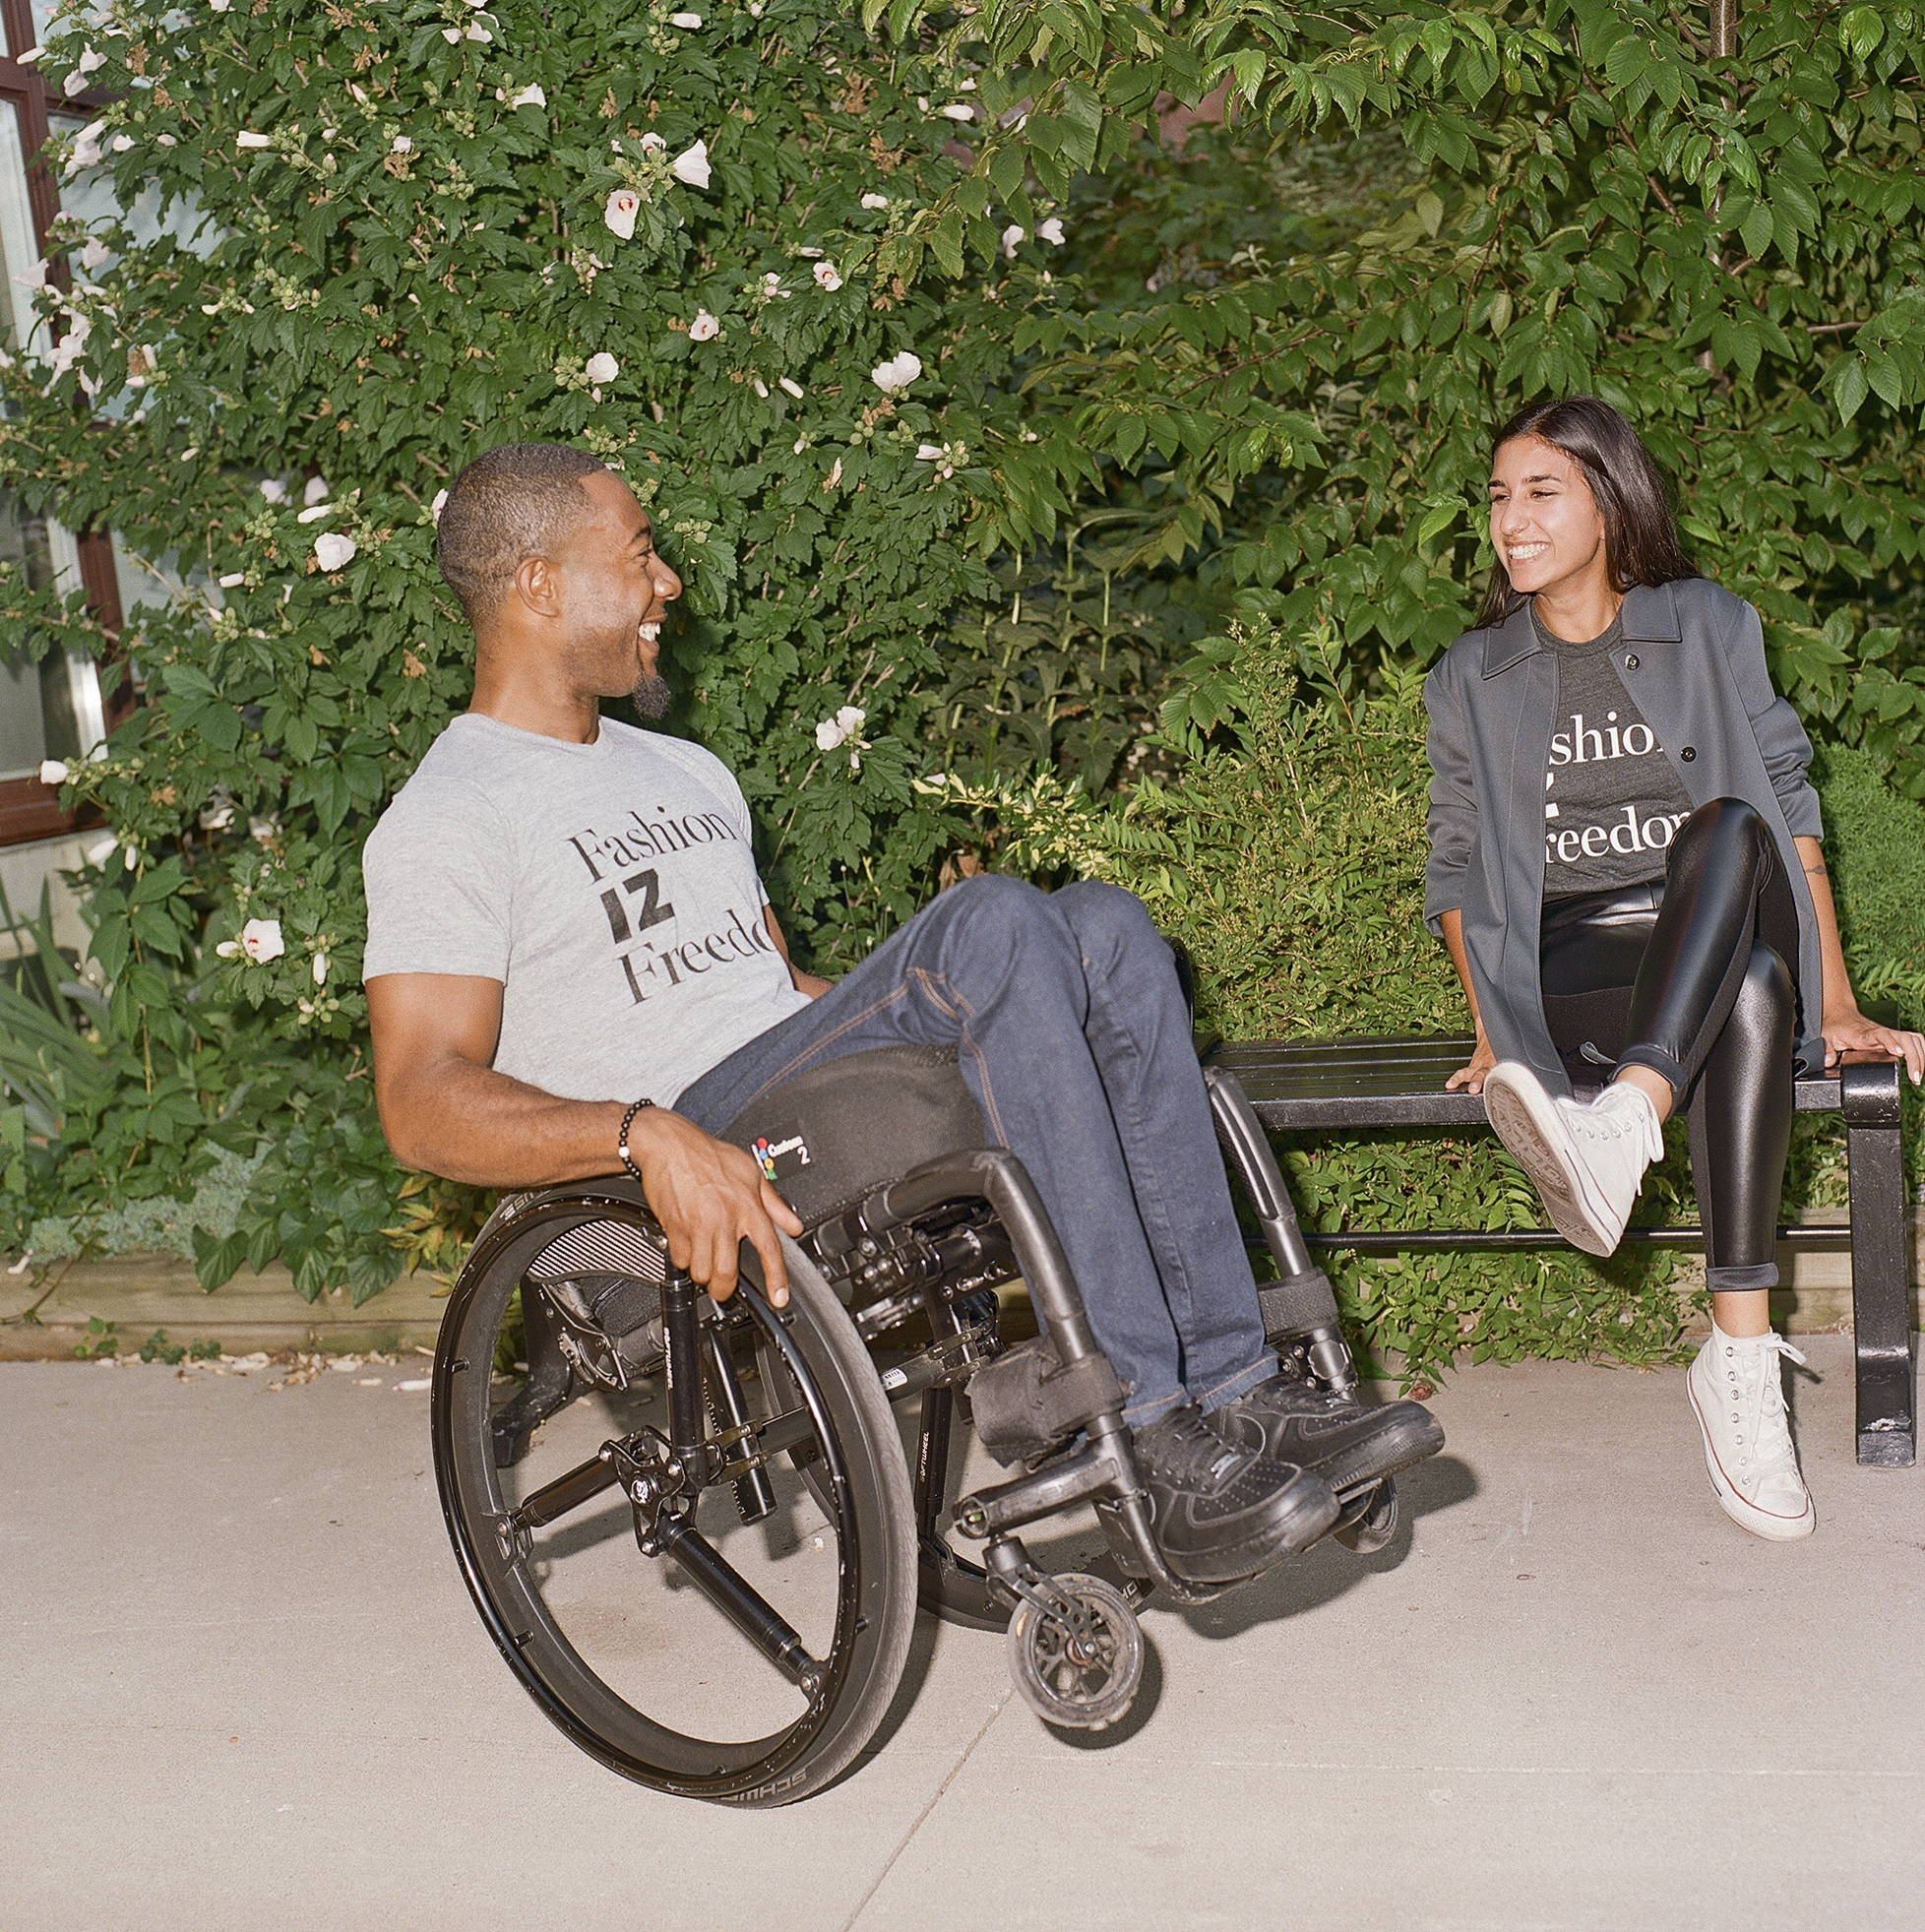 A black man, doing a wheelie in a manual wheelchair, sits side profile to the camera, smiling back at a woman with brown skin and long hair sitting on a bench to his right. He is wearing a light grey t-shirt that says,